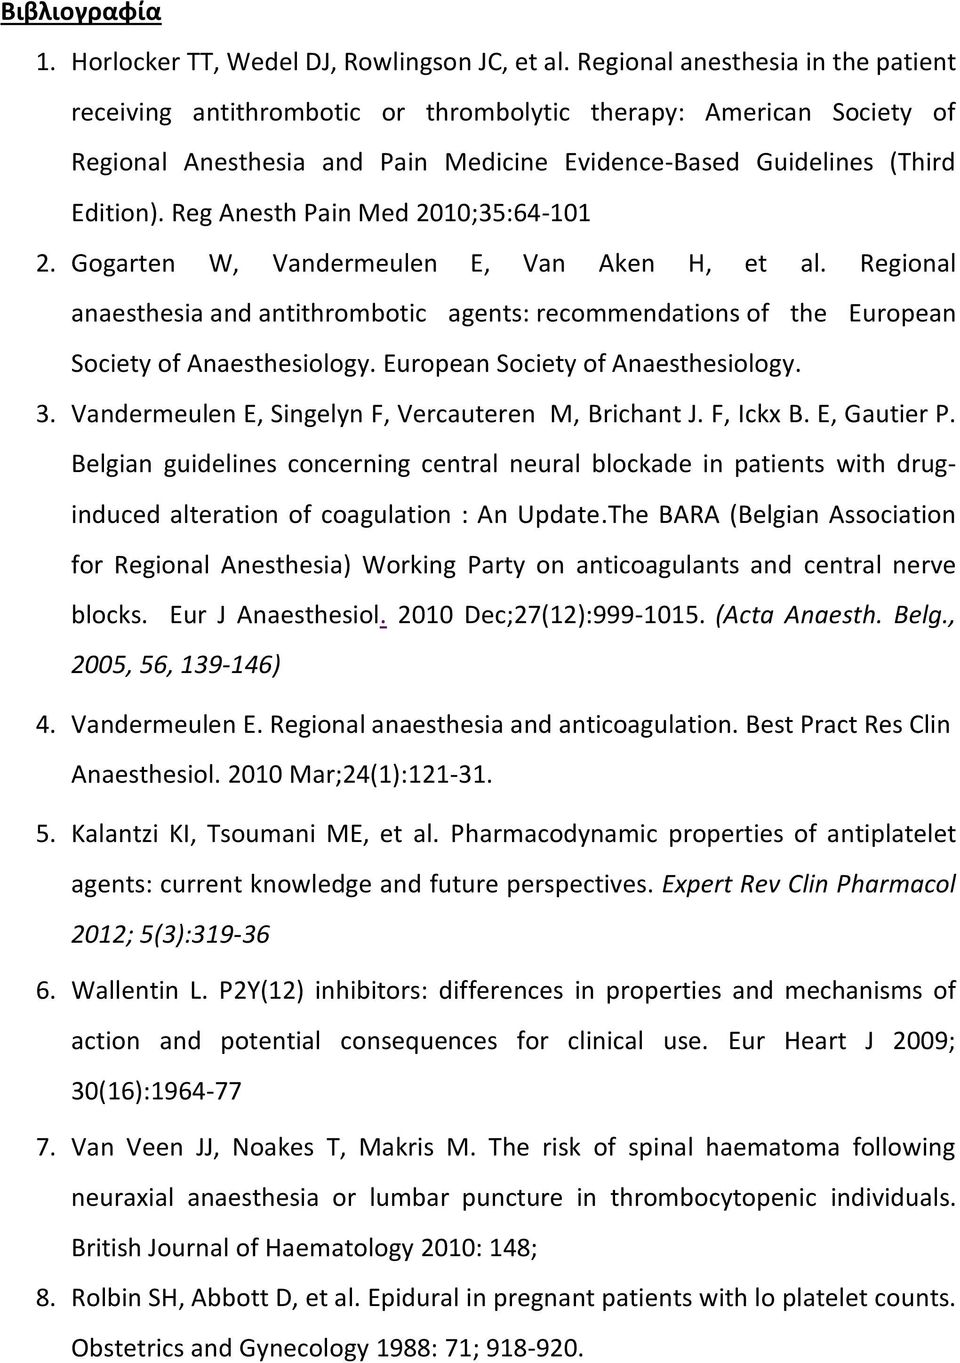 Reg Anesth Pain Med 2010;35:64-101 2. Gogarten W, Vandermeulen E, Van Aken H, et al. Regional anaesthesia and antithrombotic agents: recommendations of the European Society of Anaesthesiology.